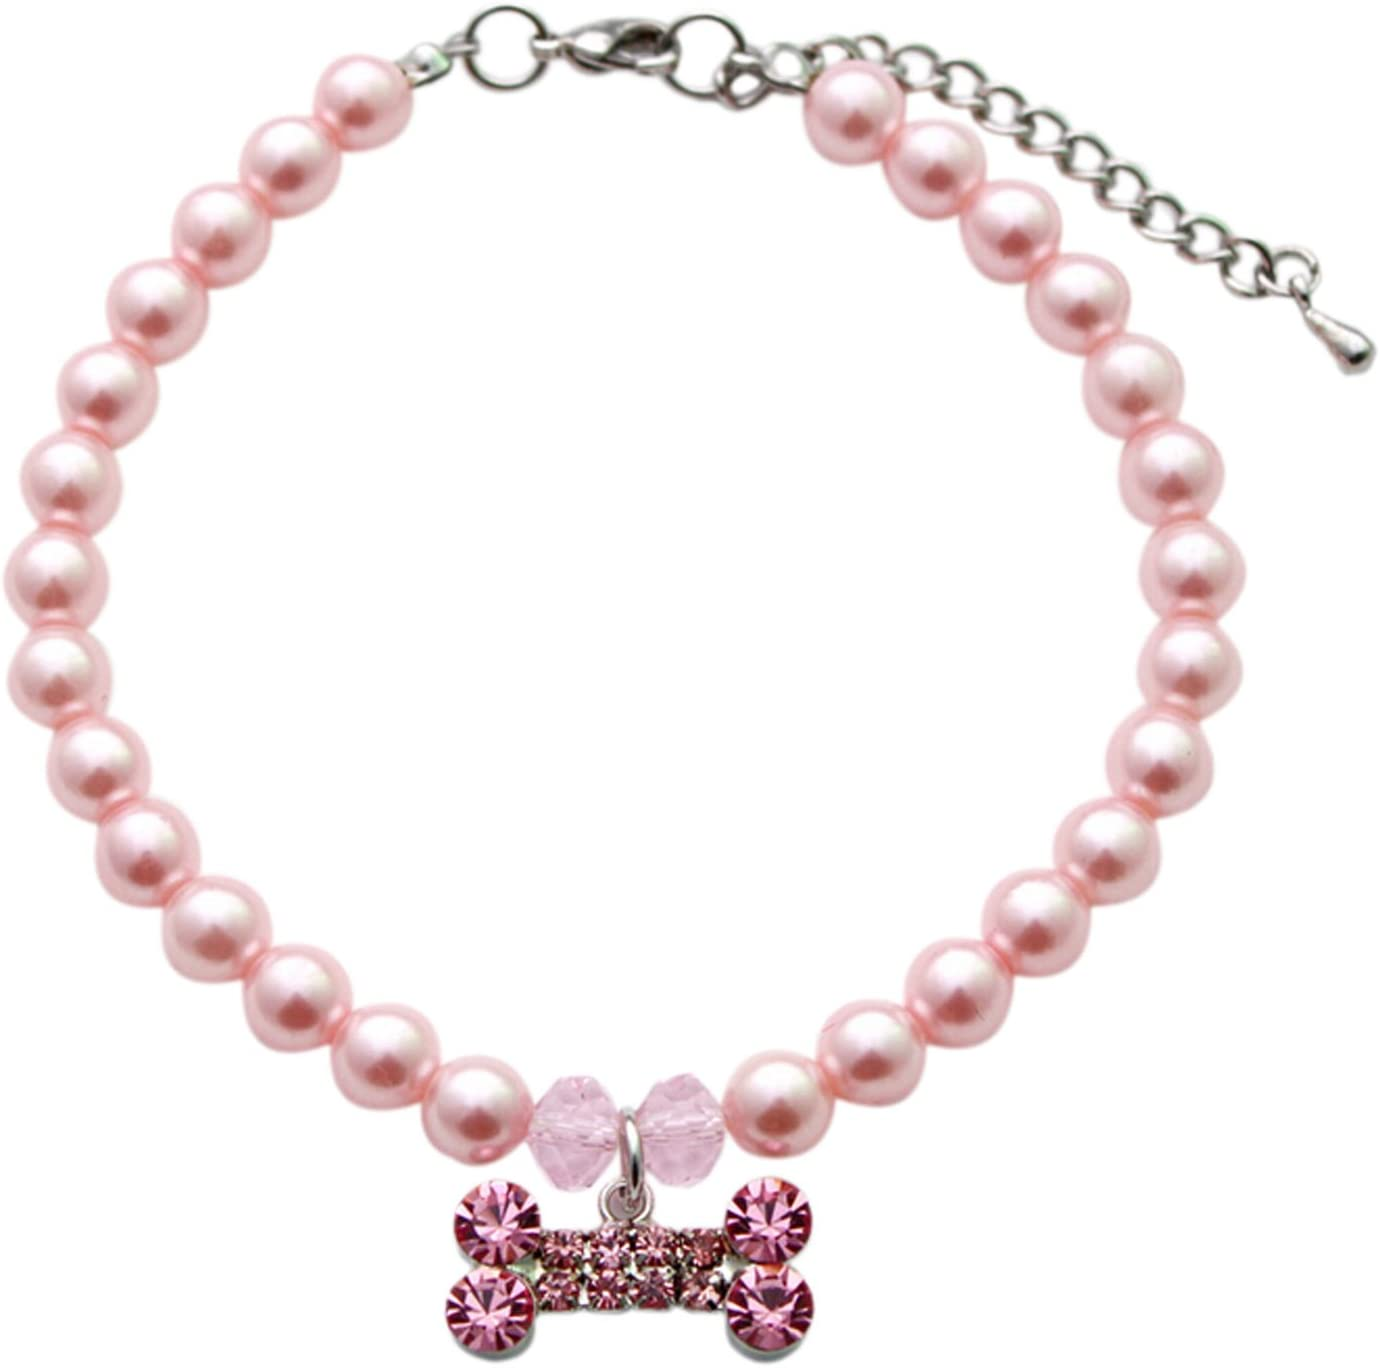 PetFavorites Designer Fancy Pearls Crystal Pet Cat Dog Necklace Jewelry with Bling Rhinestones Big Bone Charm for Pets Cats Small Dogs Female Puppy Chihuahua Yorkies Girl Costume Outfits Adjustable